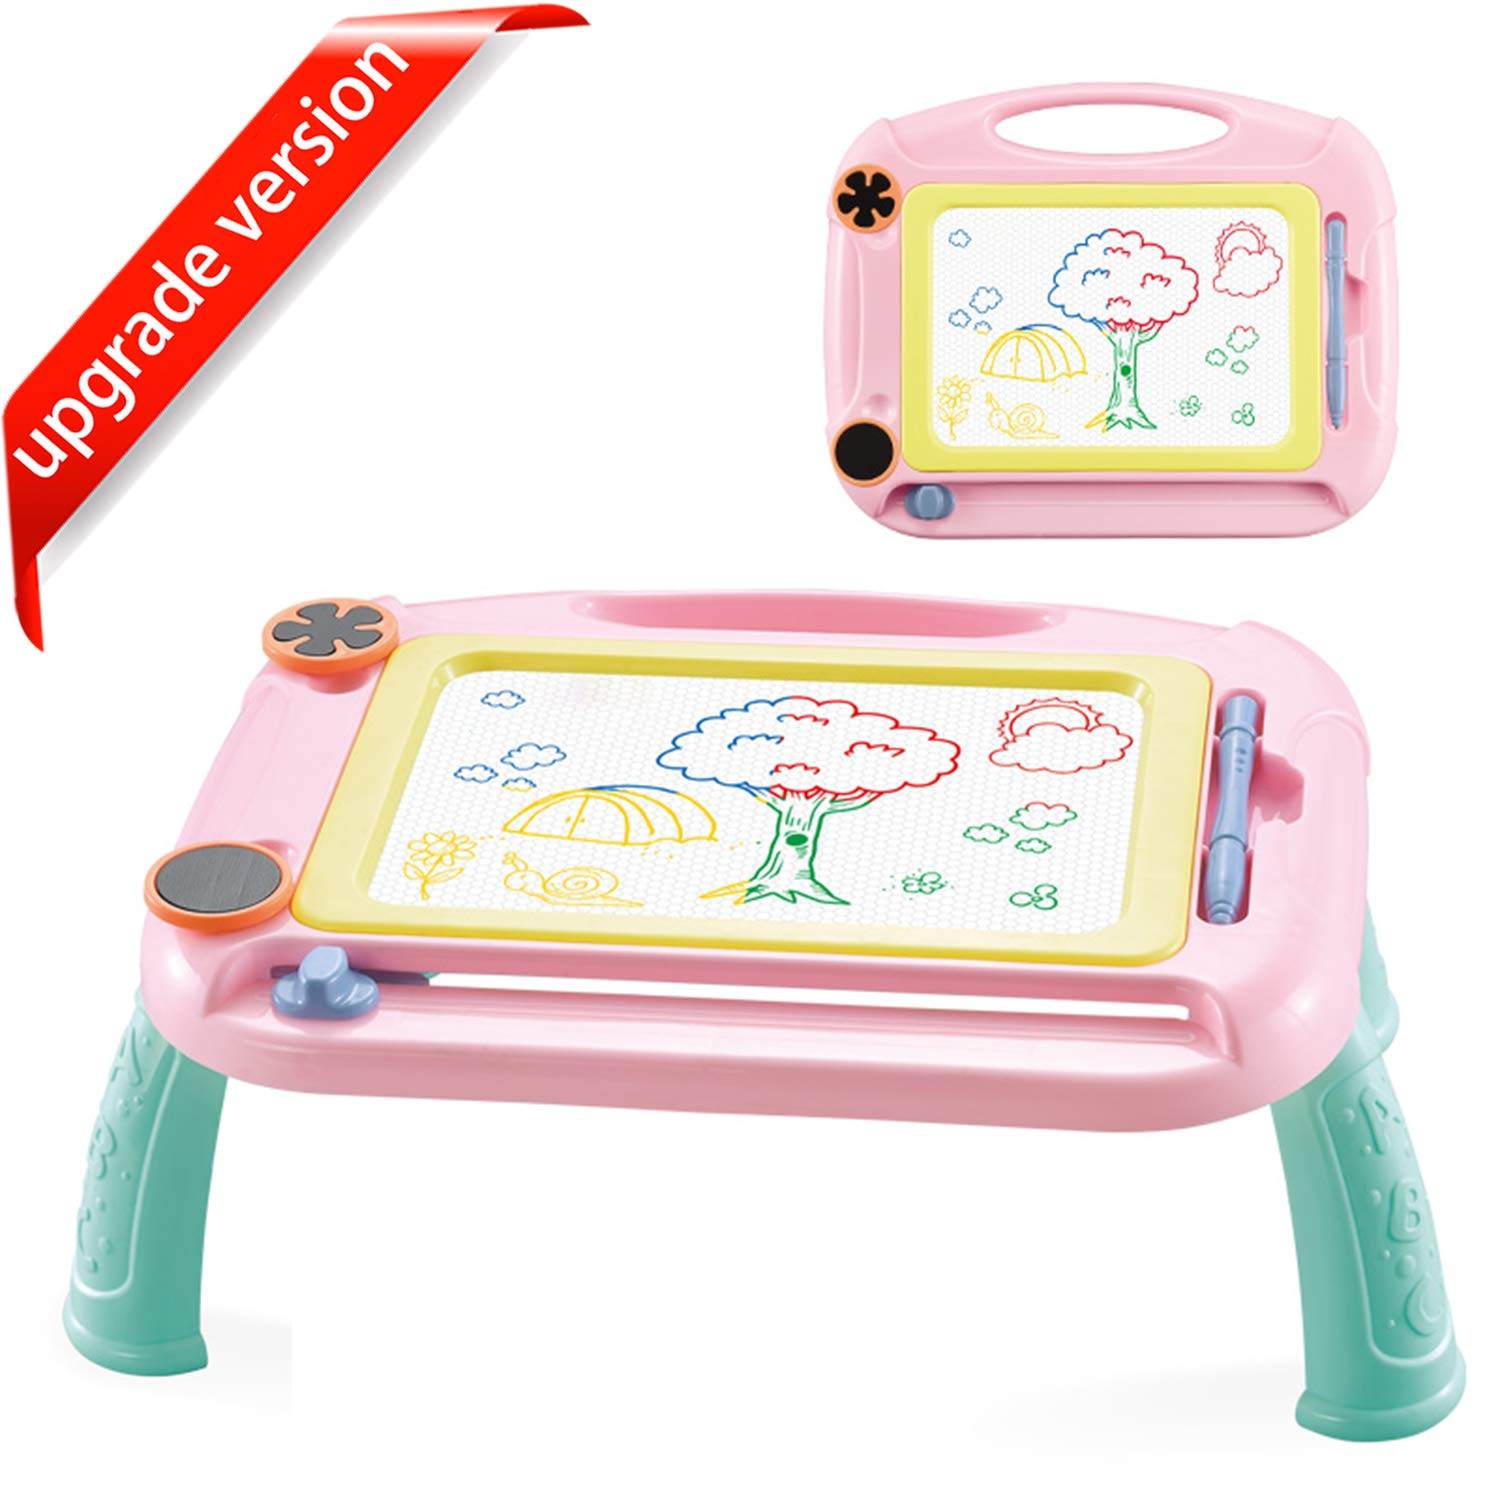 URUNIQ Magnetic Drawing Board Toy for Kids, Large Doodle Board Writing Painting Sketch Pad (Pink-2)